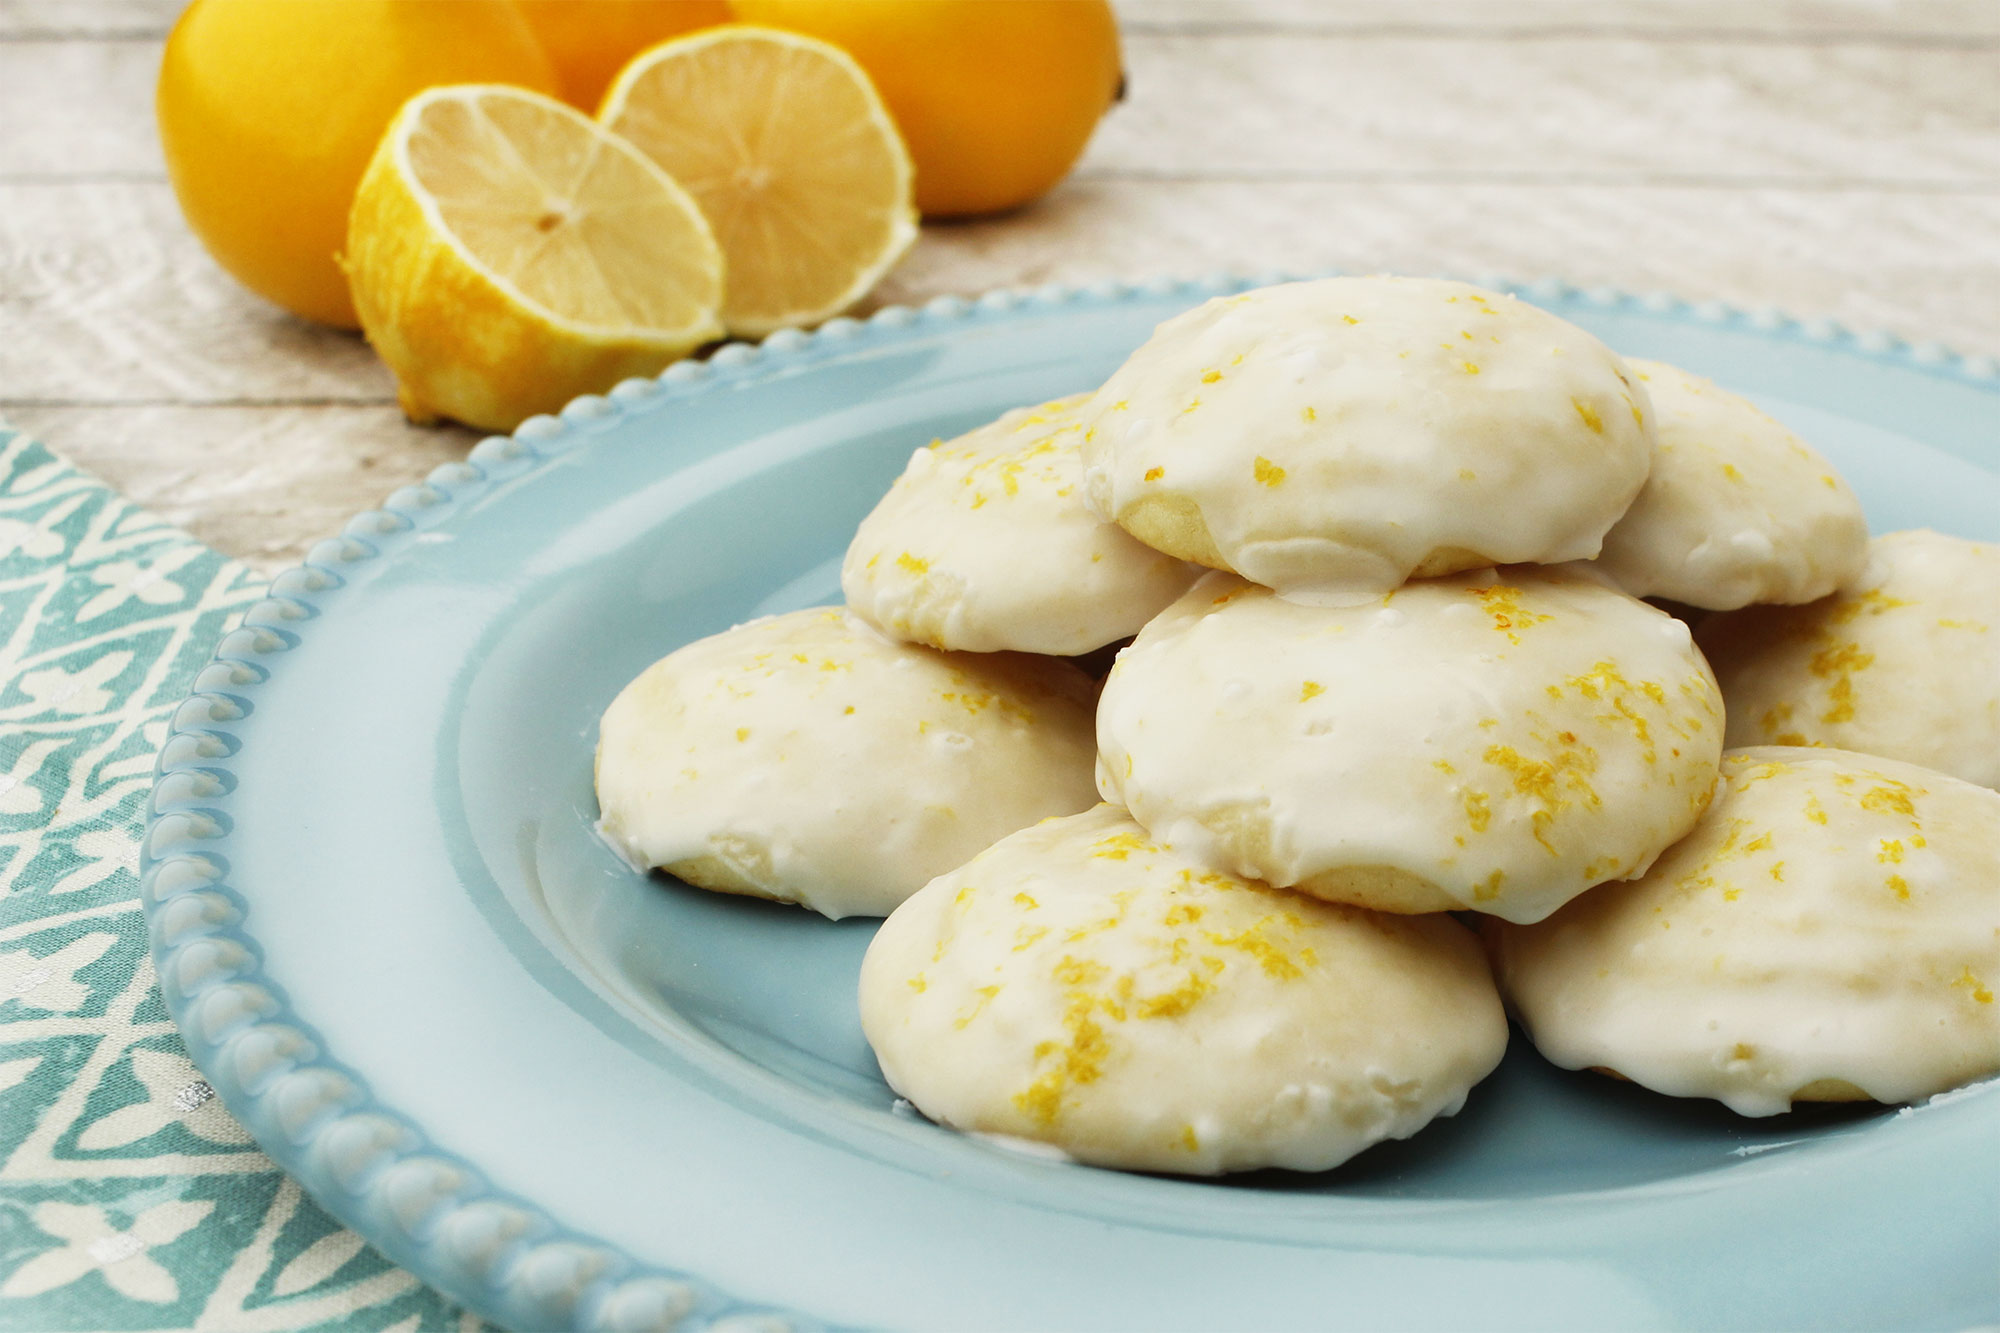 Farm Fresh To You - Recipe: Meyer Lemon Ricotta Cookies